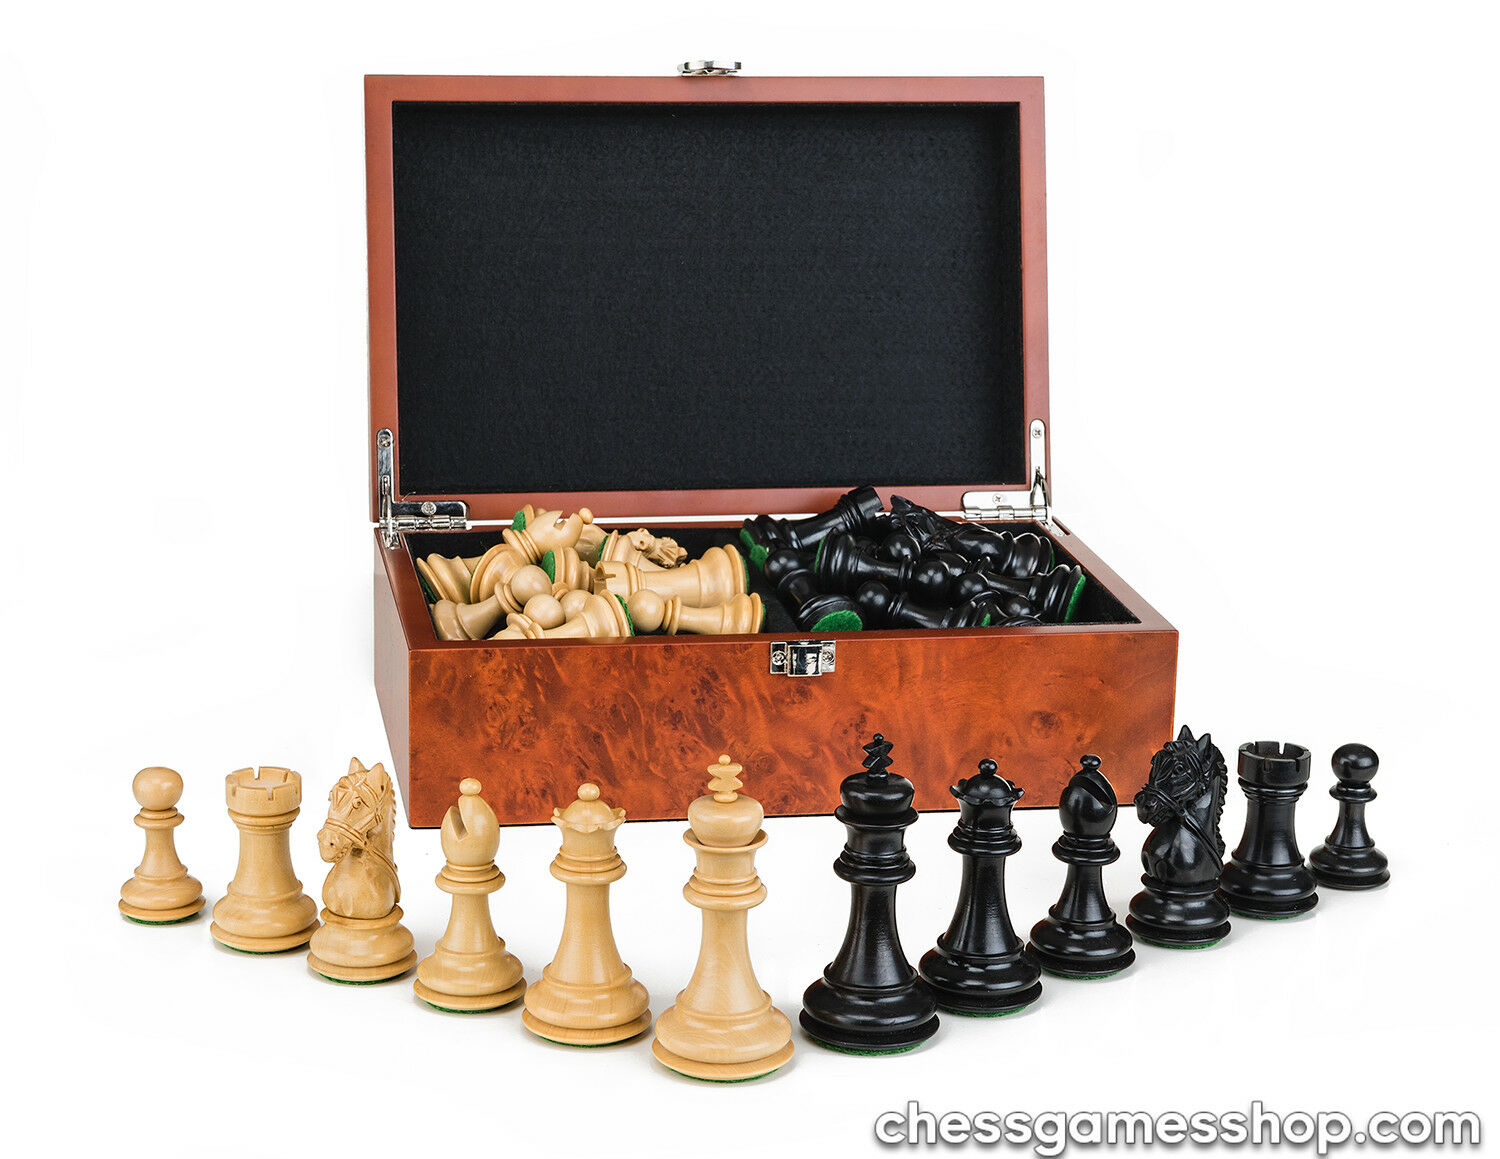 Luxury wooden CHESS pieces New York schwarz - weighted felted-EXTRA queens-in BOX